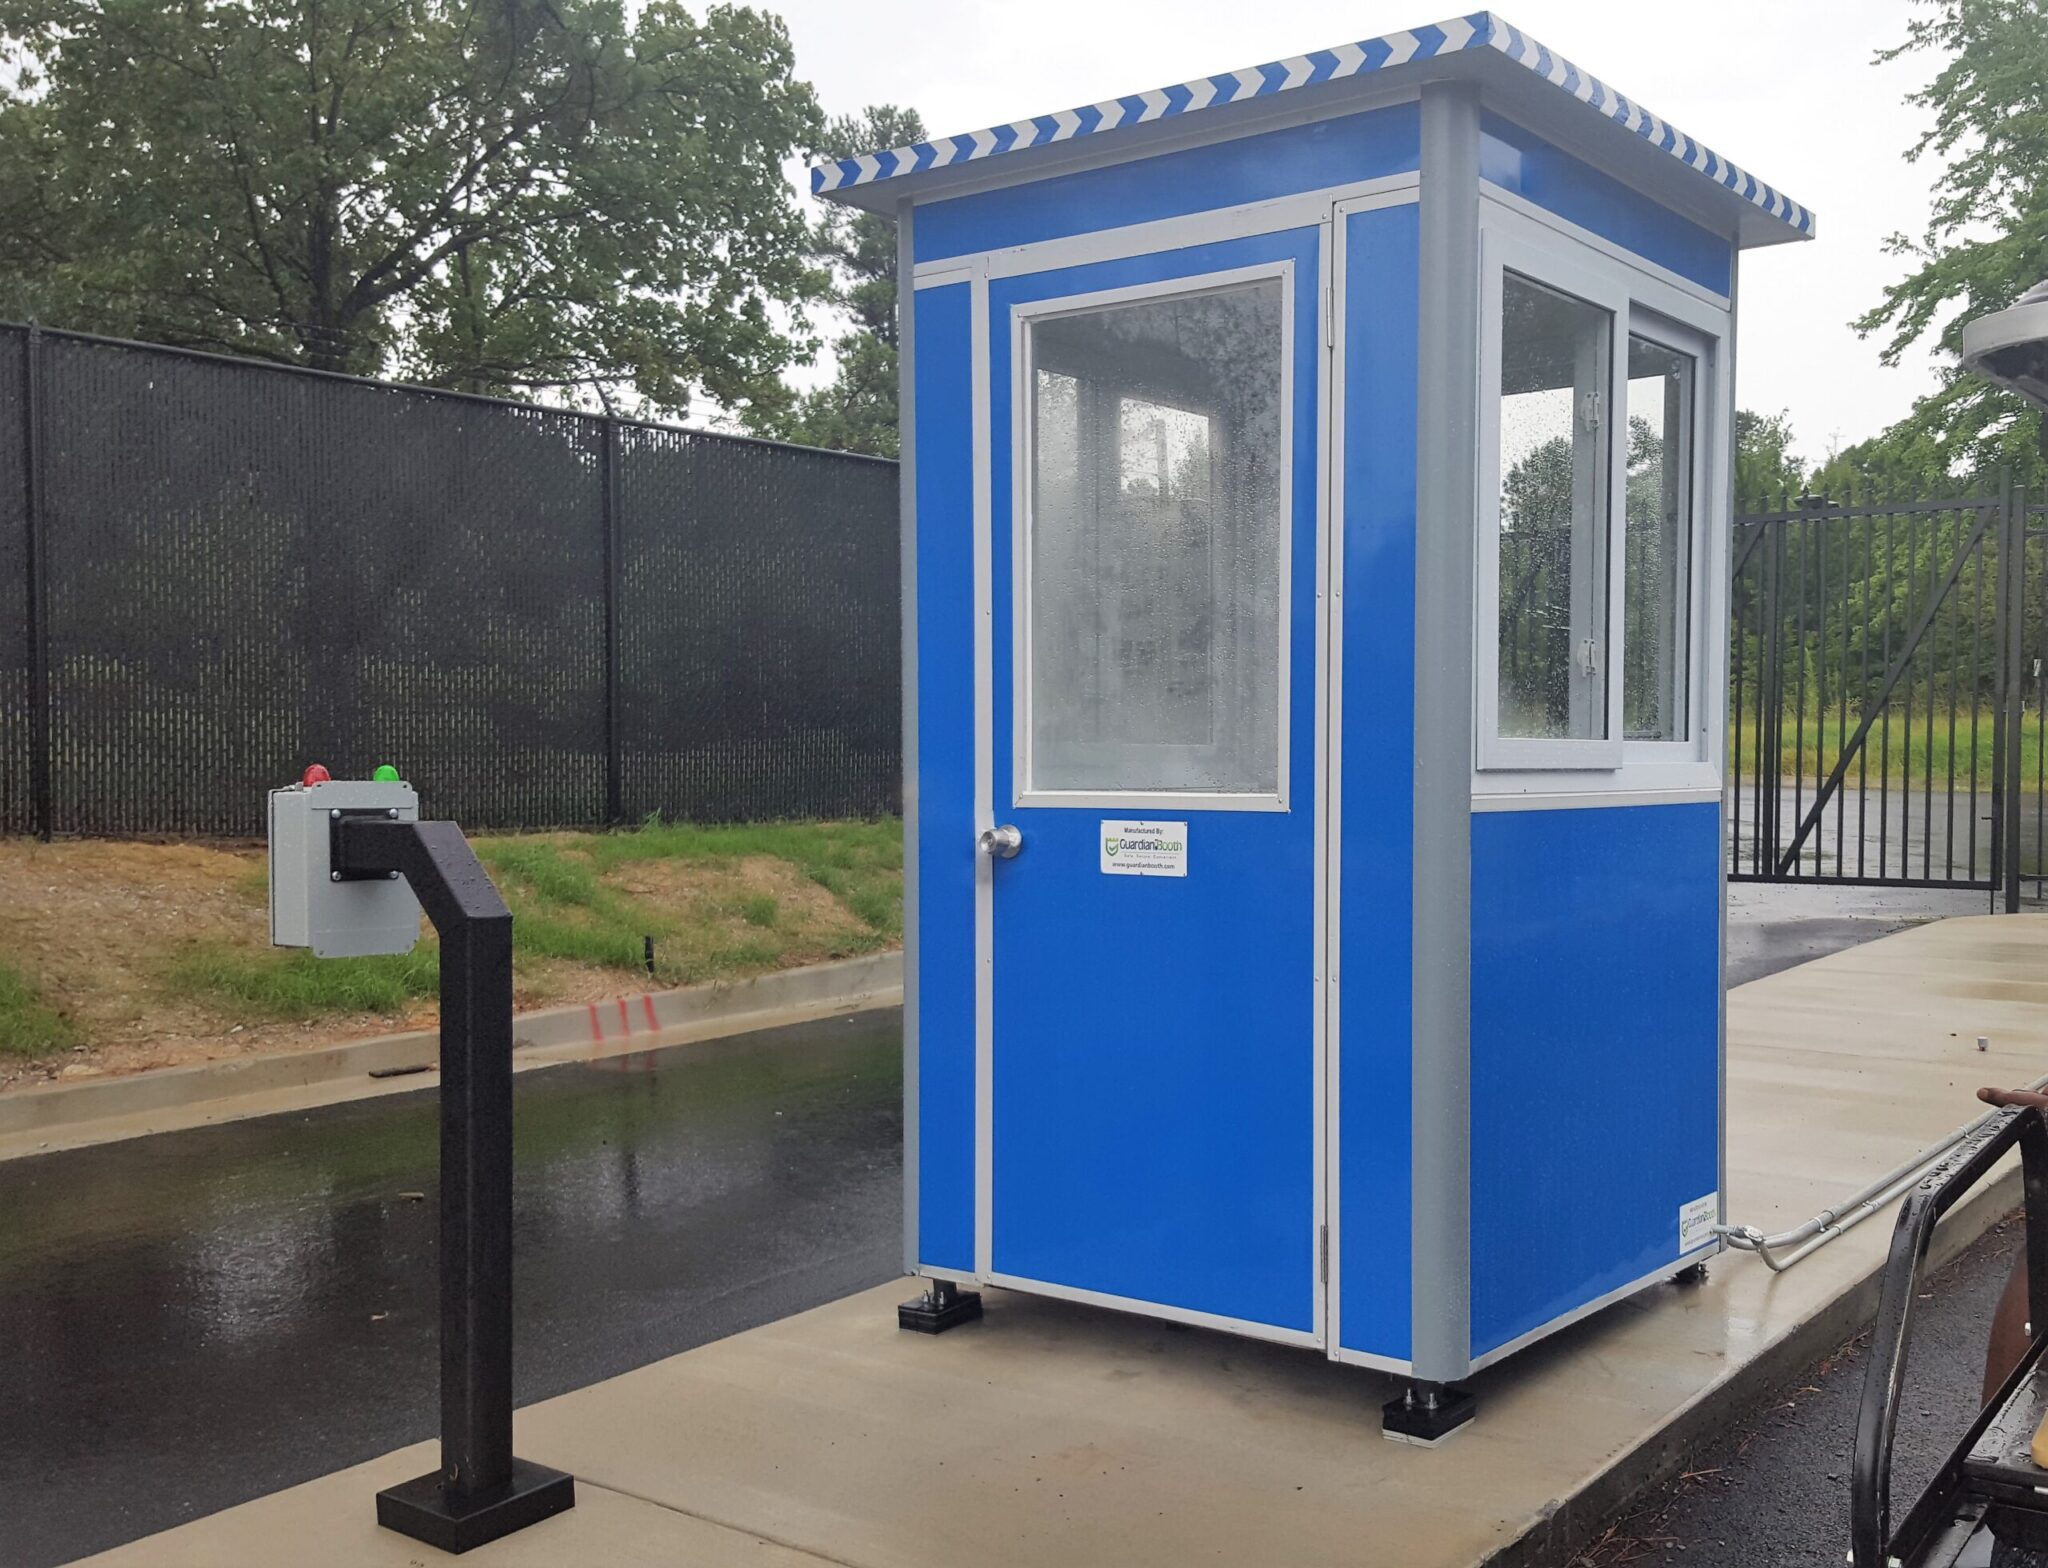 4x4 School Security Booth in Atlanta, GA controlling Front Gate with Intercom System, Sliding Windows, and Anchoring Brackets